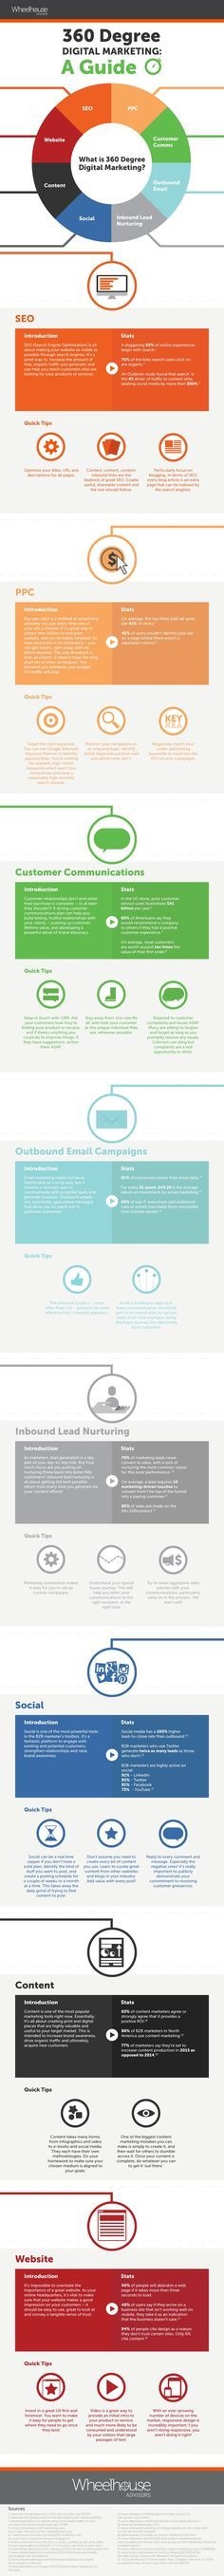 Developing A 360-Degree Digital Marketing Strategy - infographic |